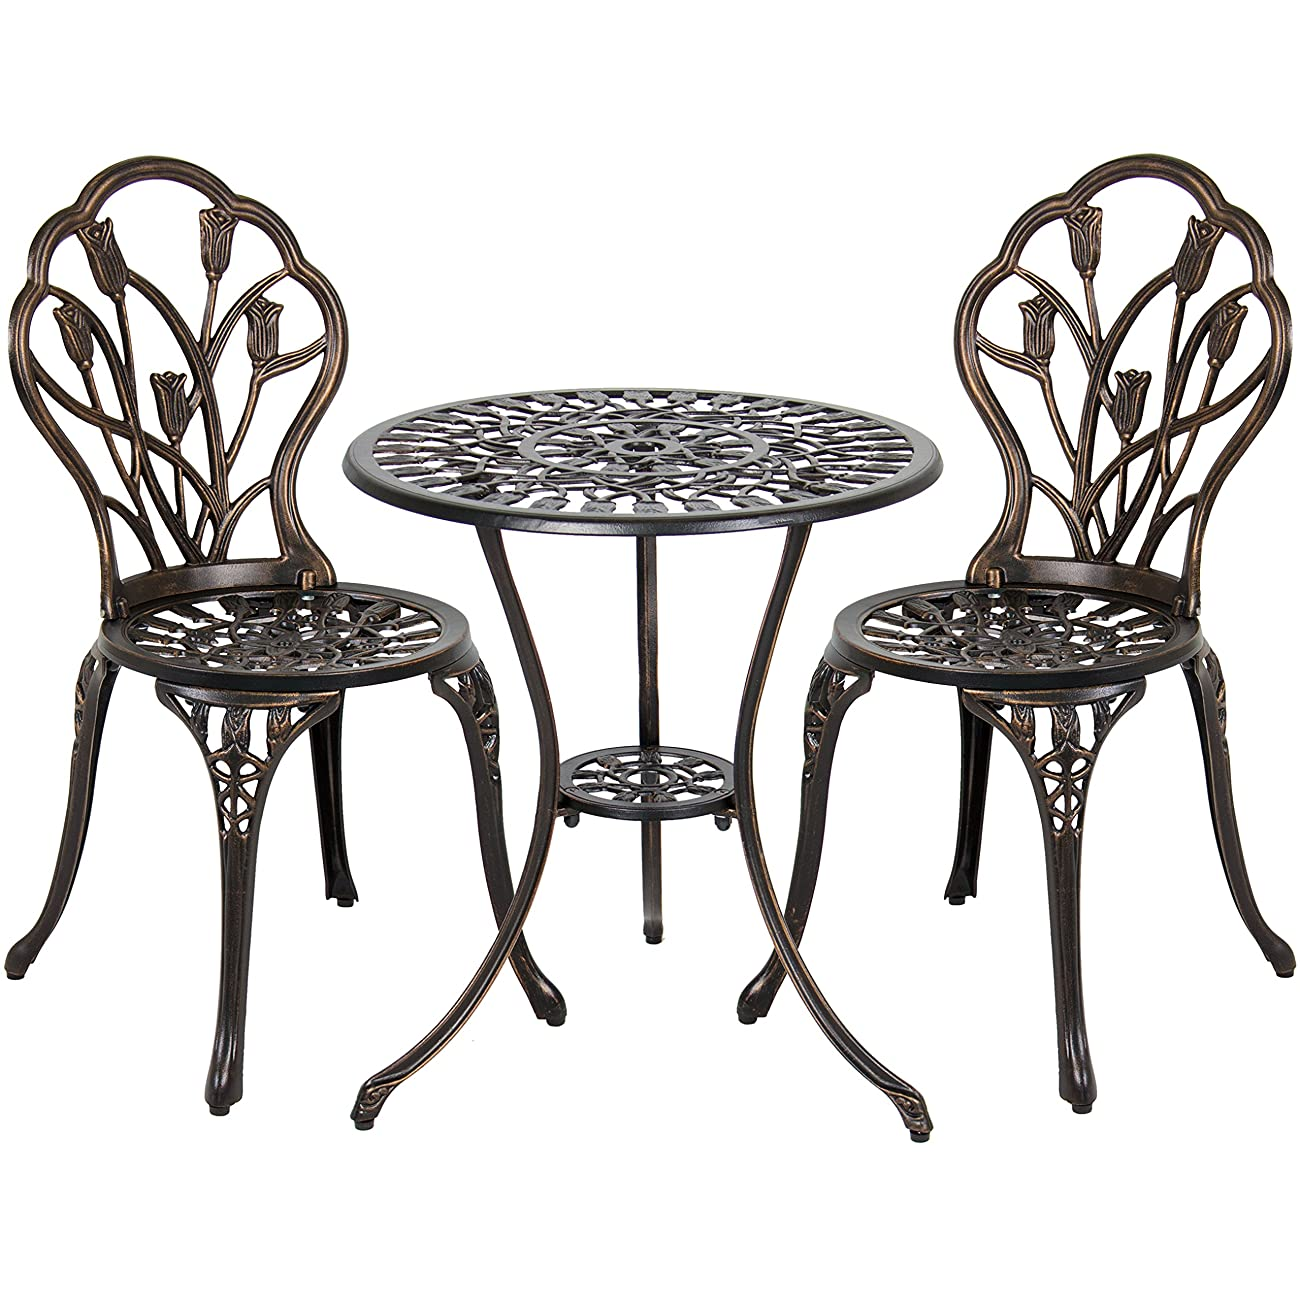 Best Choice Products Outdoor Patio Furniture Tulip Design Cast Aluminum Bistro Set in Antique Copper 1